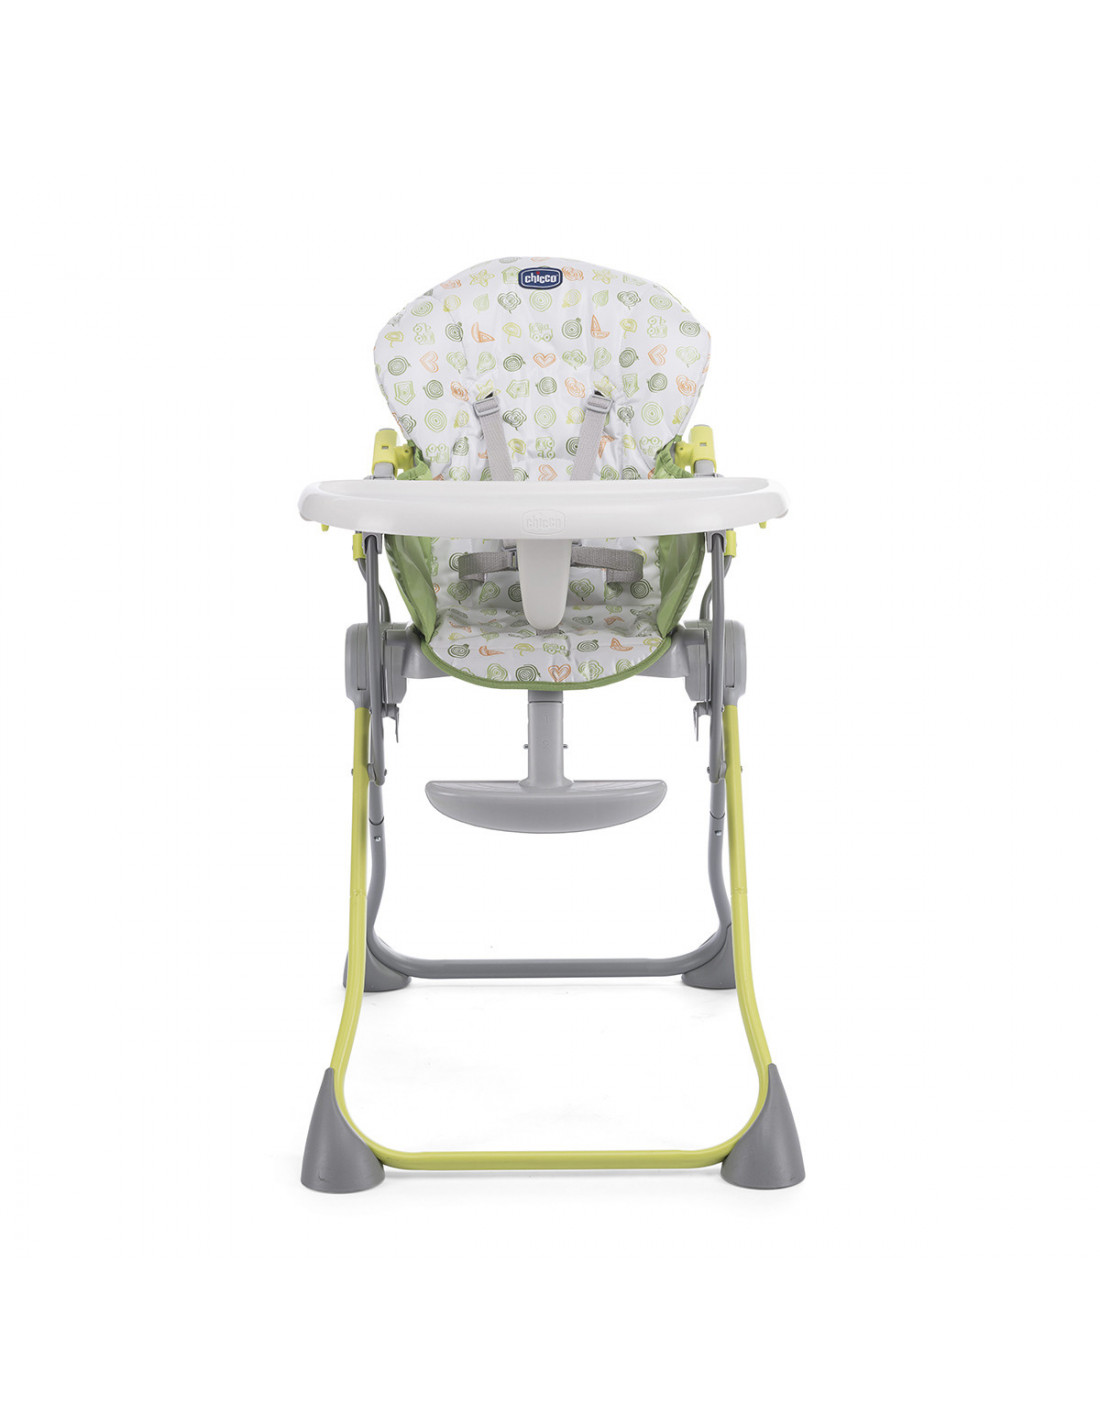 Meal pas Pocket haute cher Chicco chaise qpjSUMGzLV